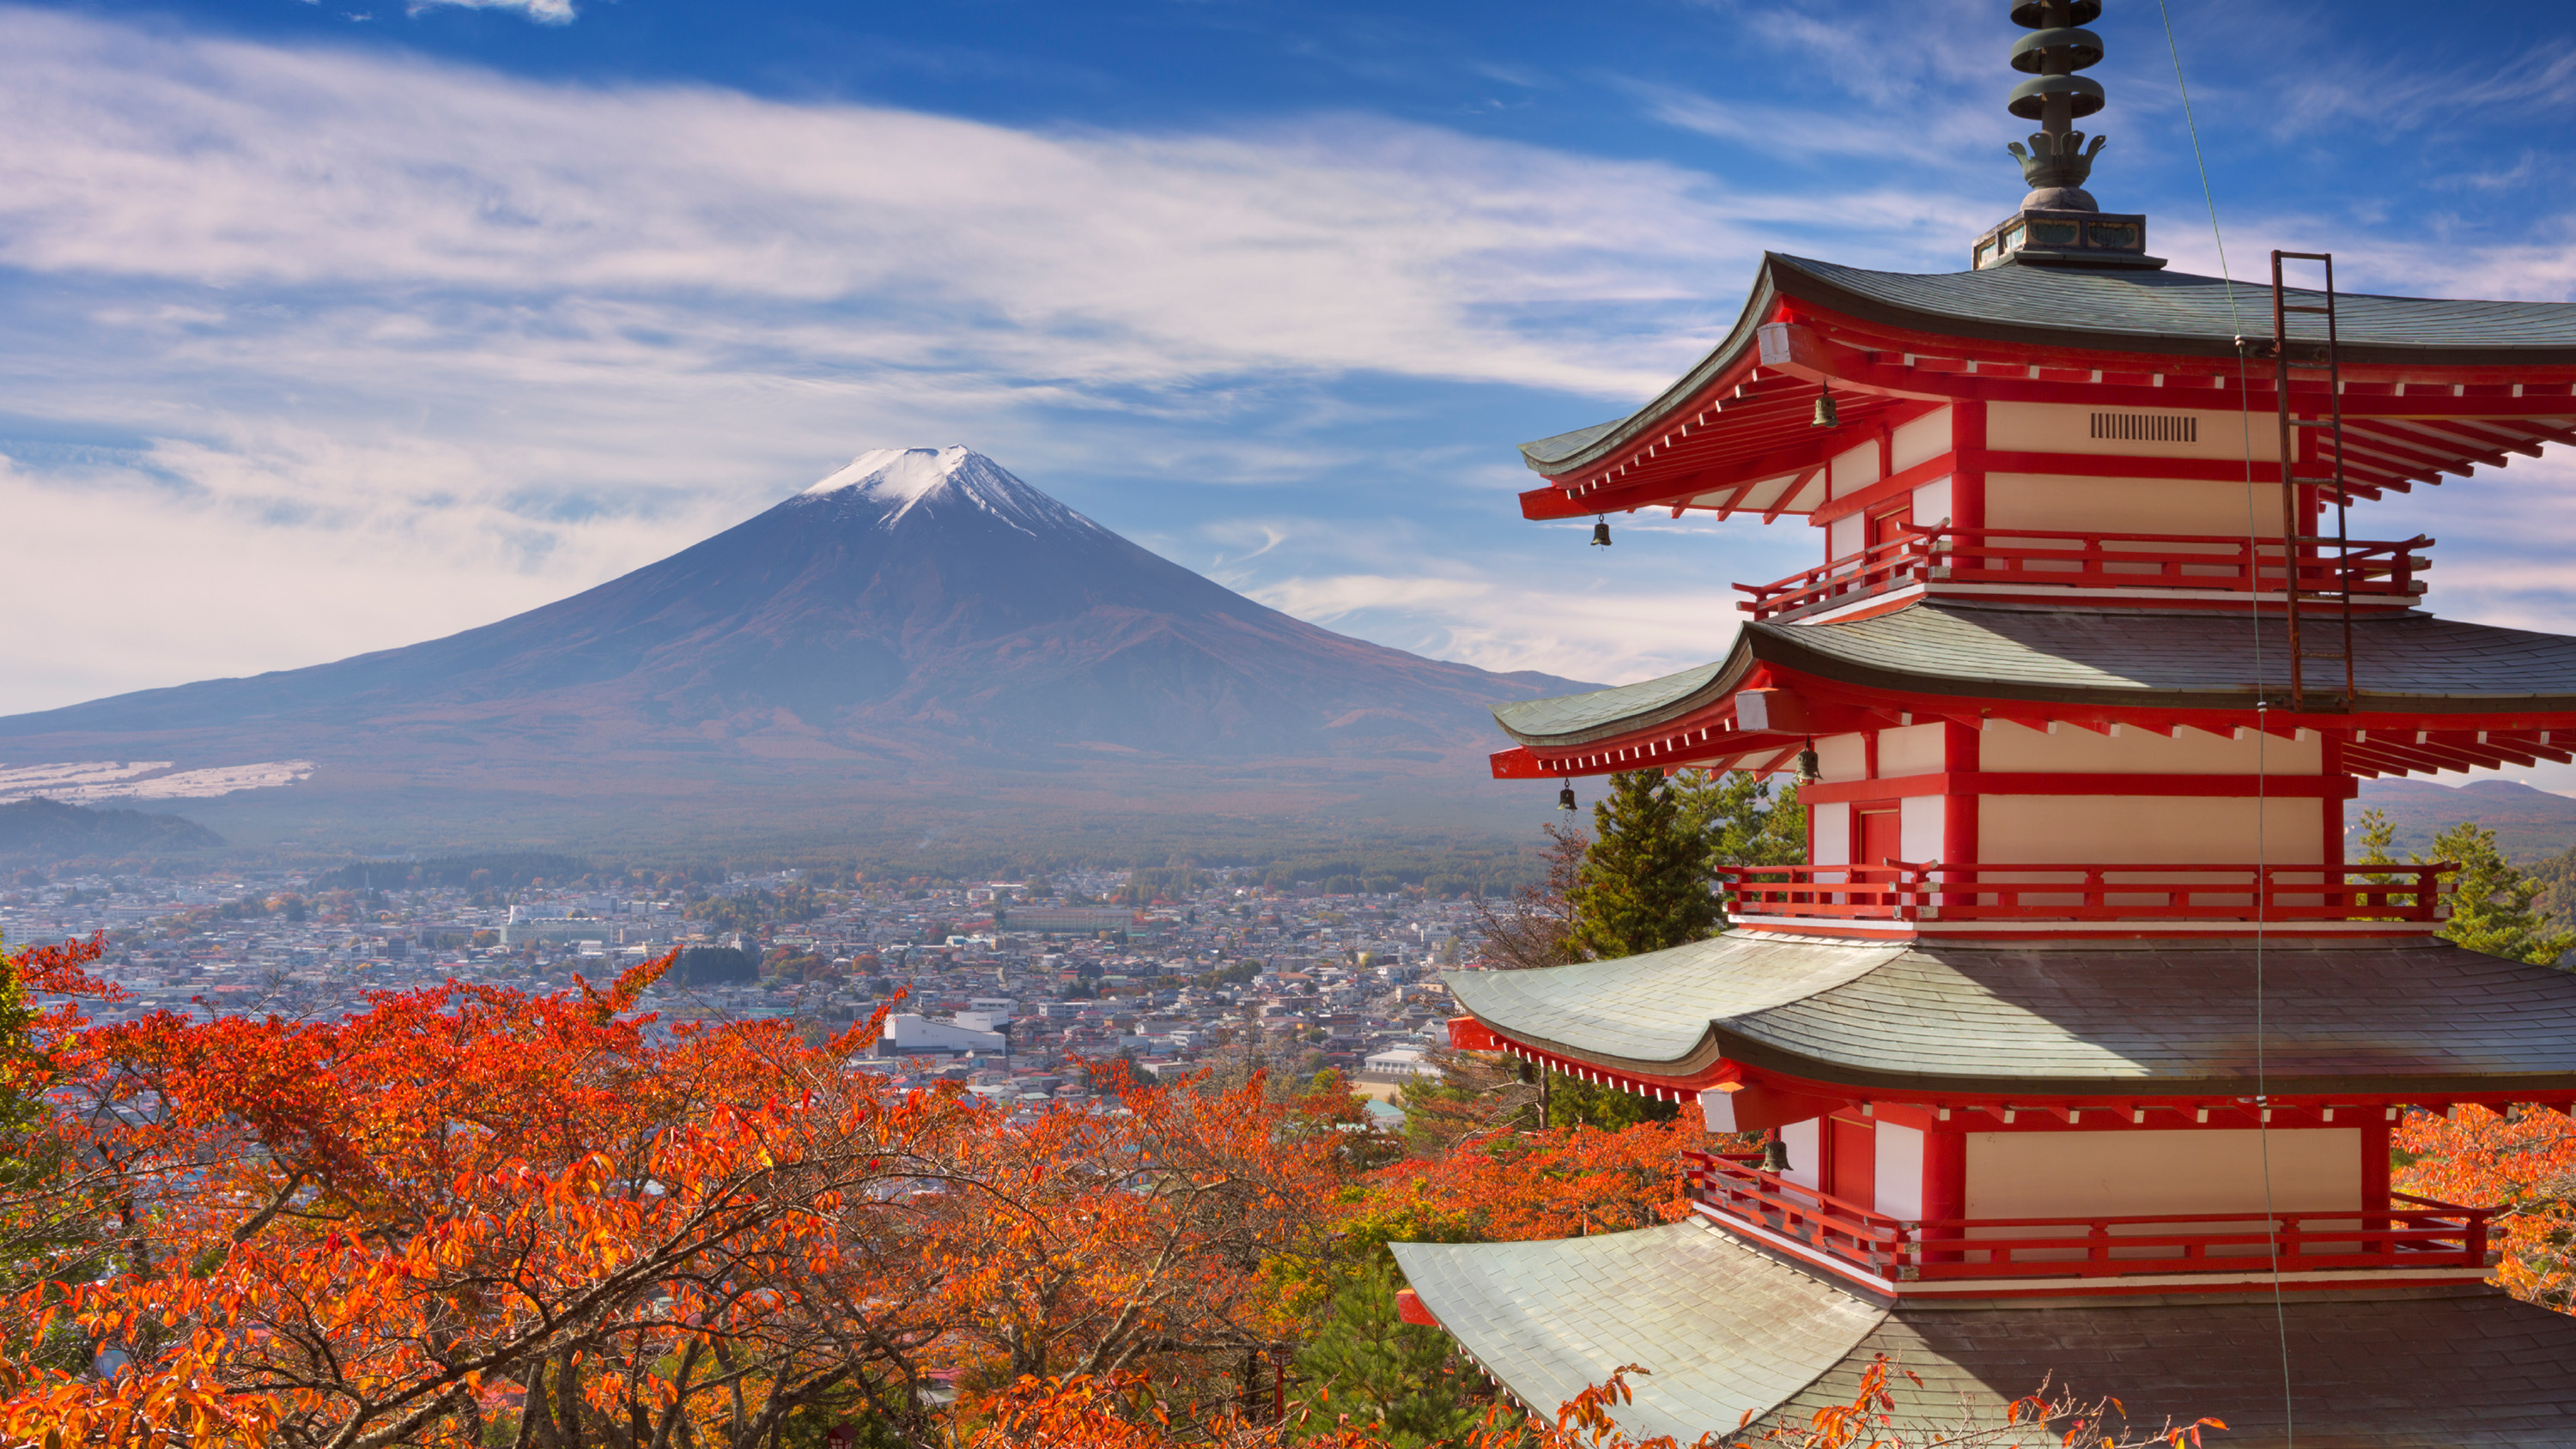 Chureito Pagoda and Mount Fuji photograph